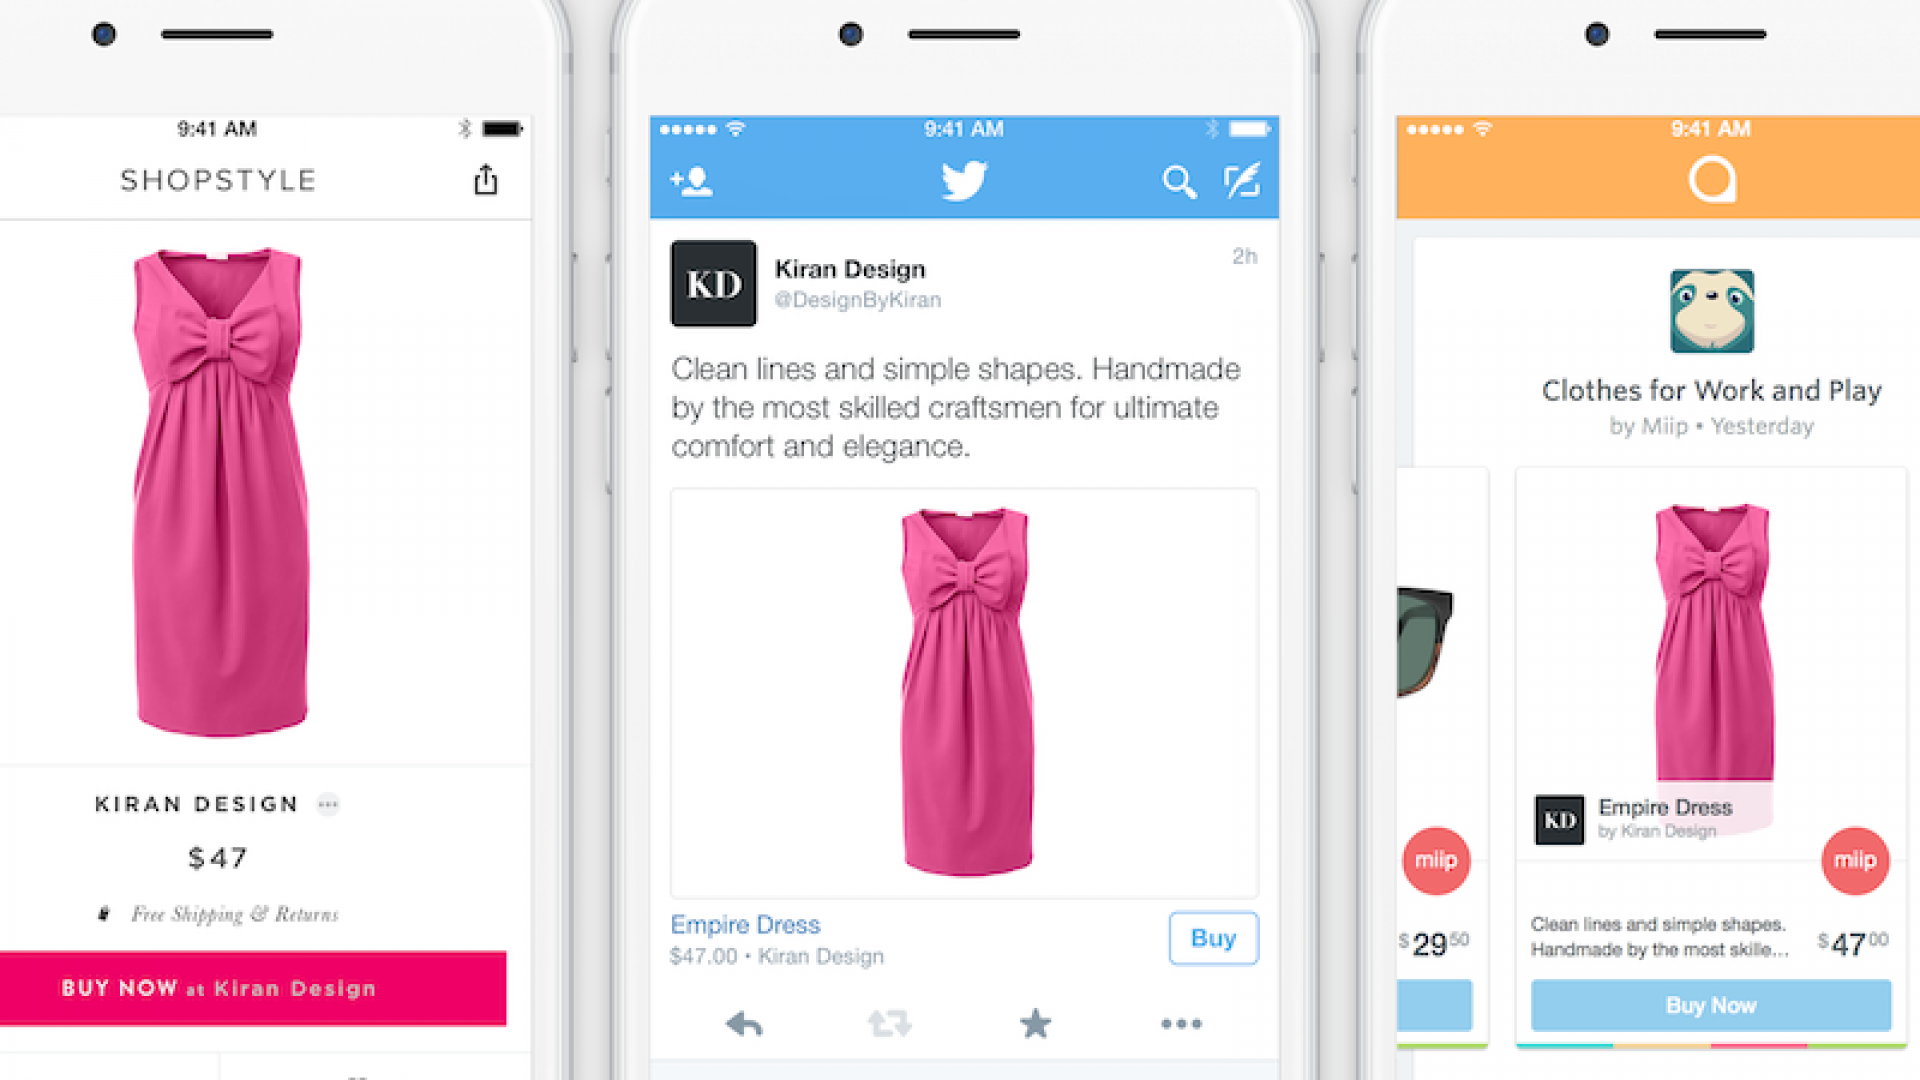 Stripe Relay Allows One-Click In-App Purchase for Merchants